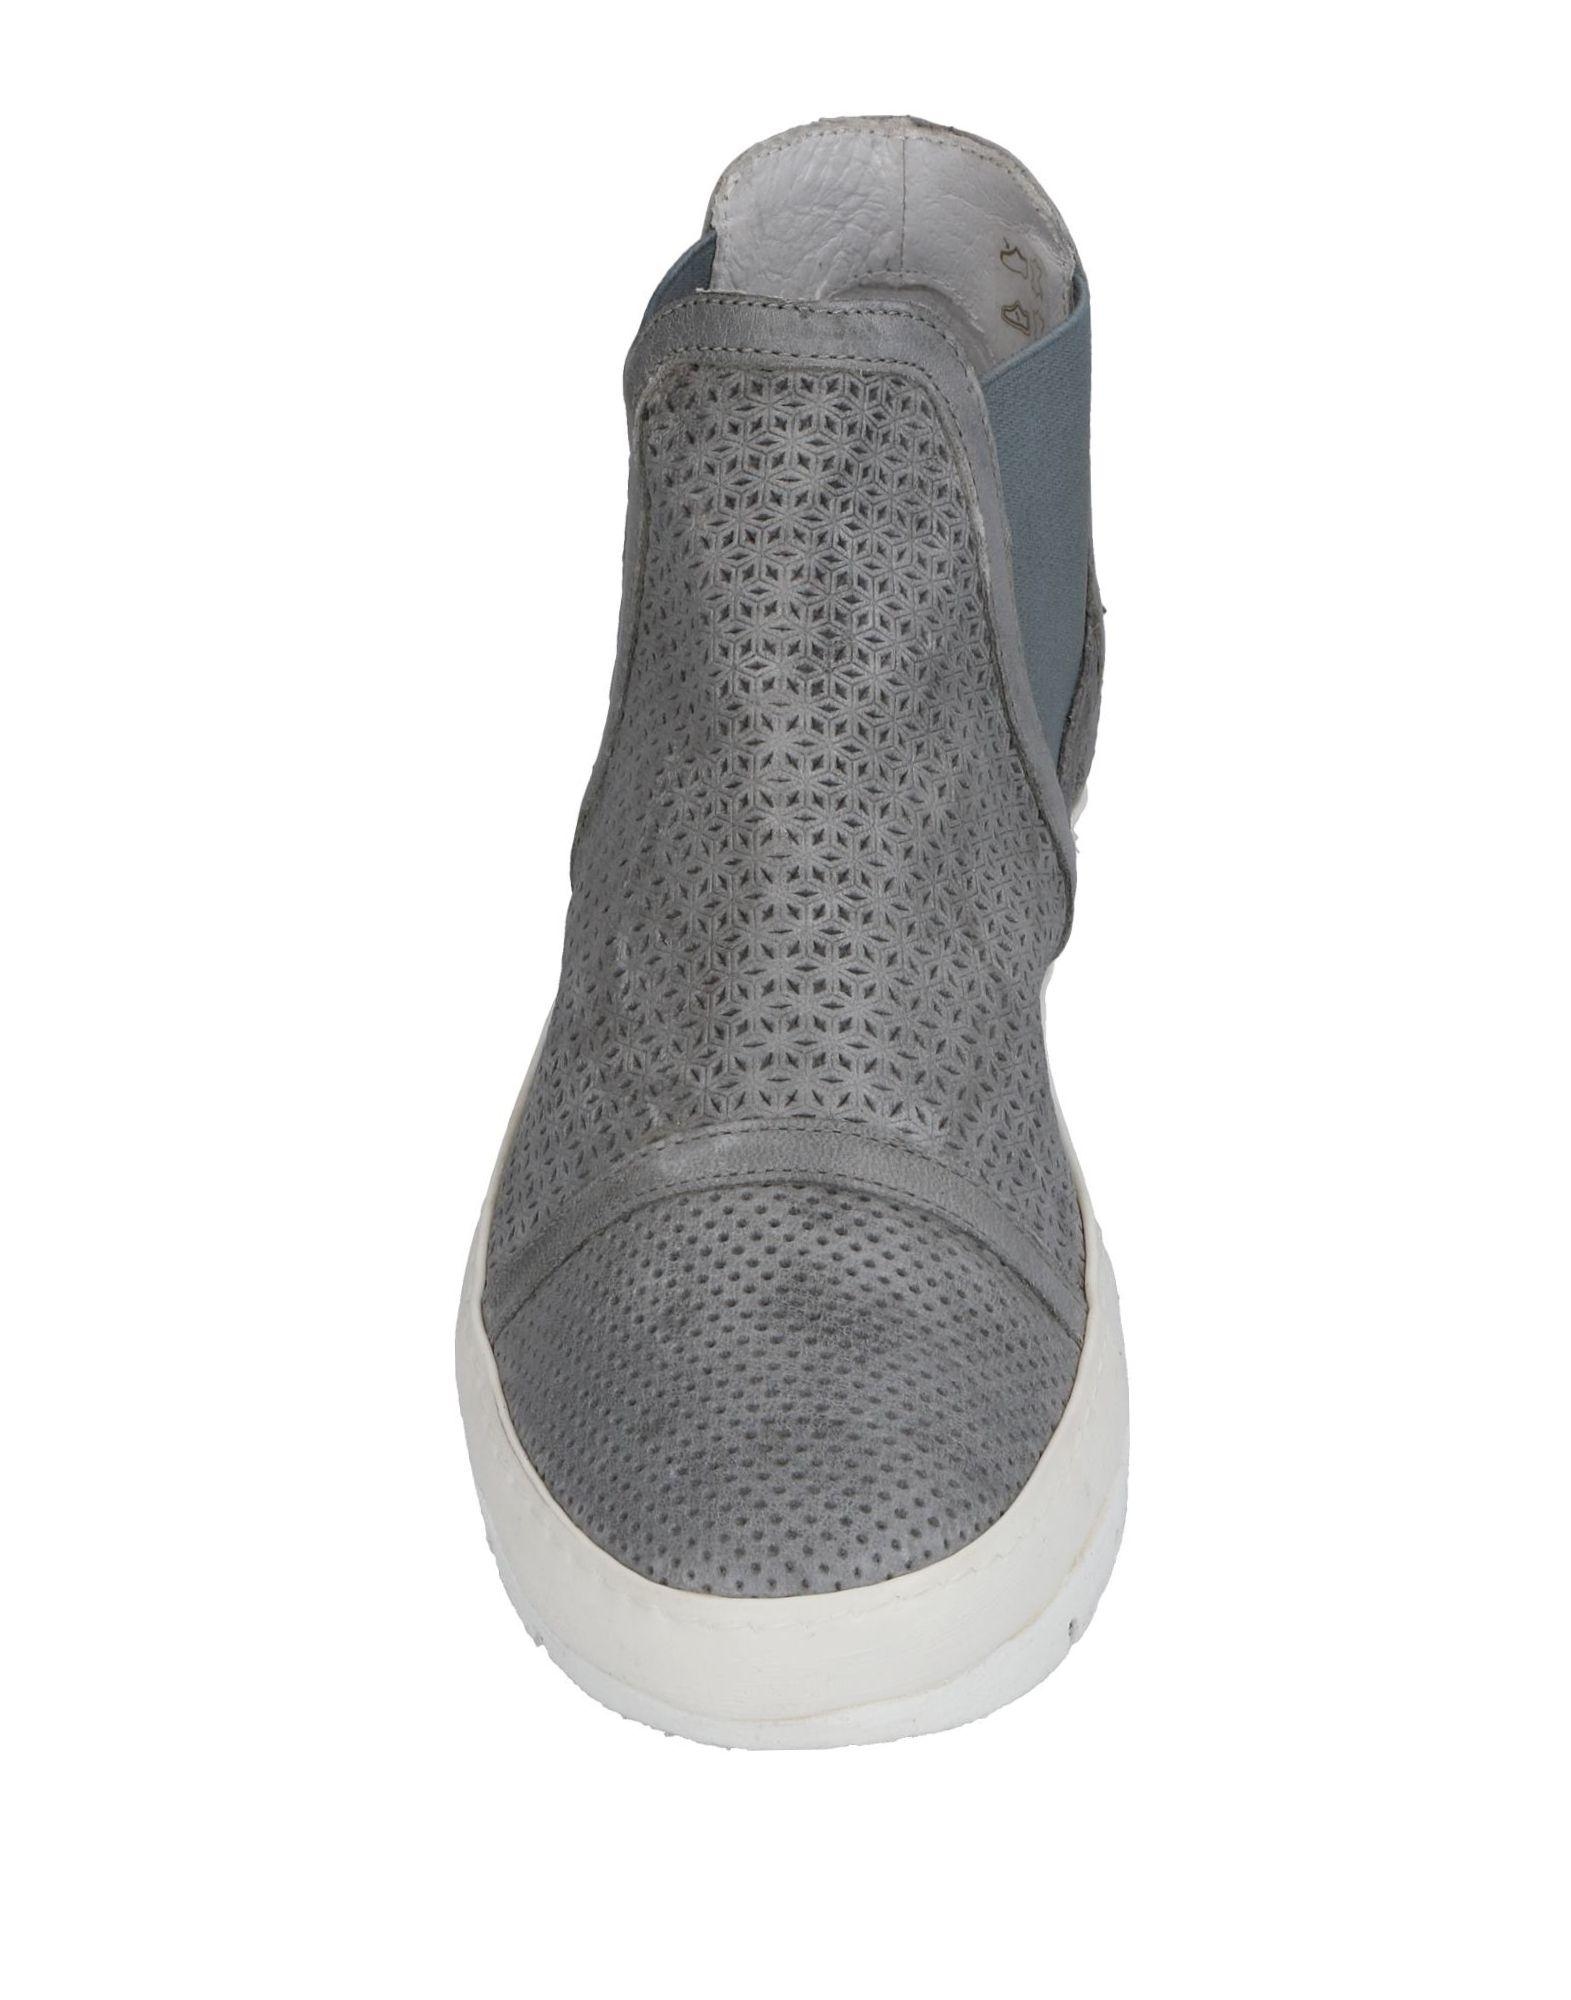 Khrio Leather High-tops & Sneakers in Grey (Grey)